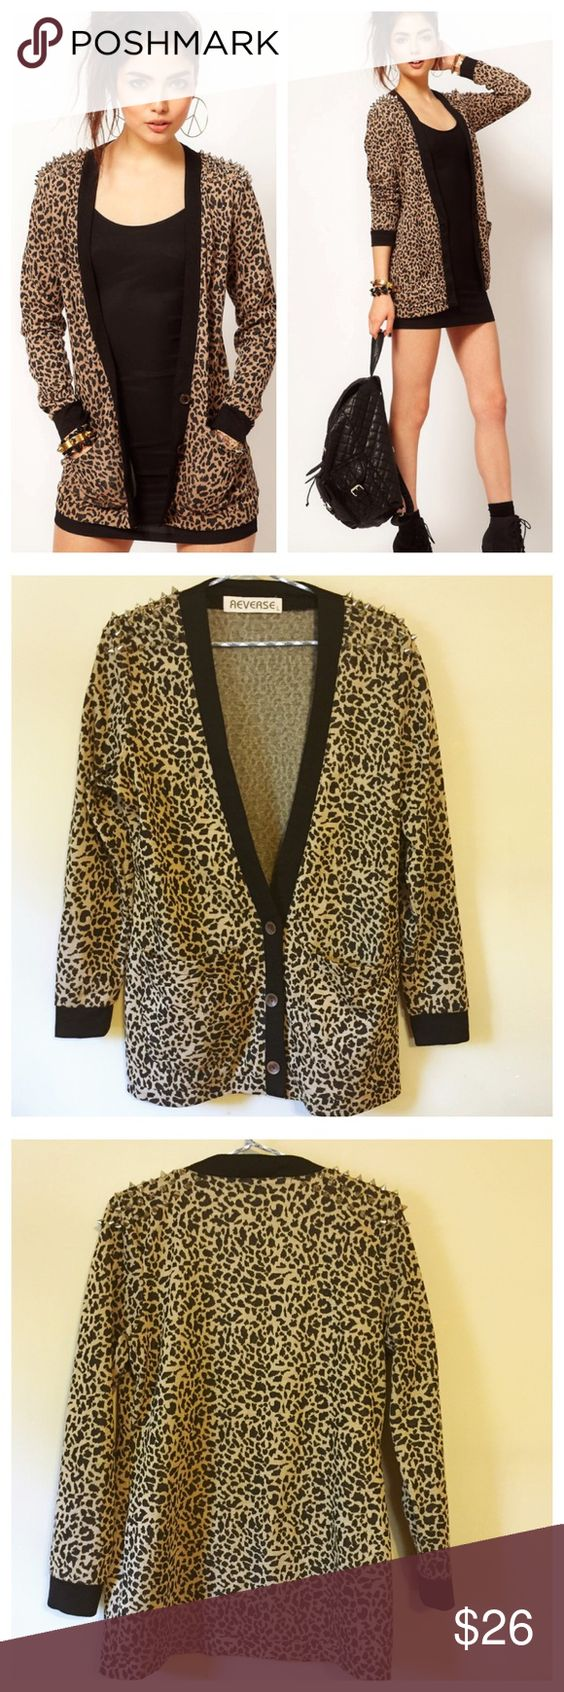 """New ASOS Leopard Print Studded Shoulder Cardigan L New without tags --- ASOS Leopard Print Studded Shoulder Mediumweight Cardigan --- Large ---  65% polyester 35% viscose --- two pockets and three wooden button closure --- black trim --- 19"""" bust --- 27.5"""" length --- brand is Reverse --- thank you for visiting my boutique, please feel free to ask any questions  ASOS Sweaters Cardigans"""